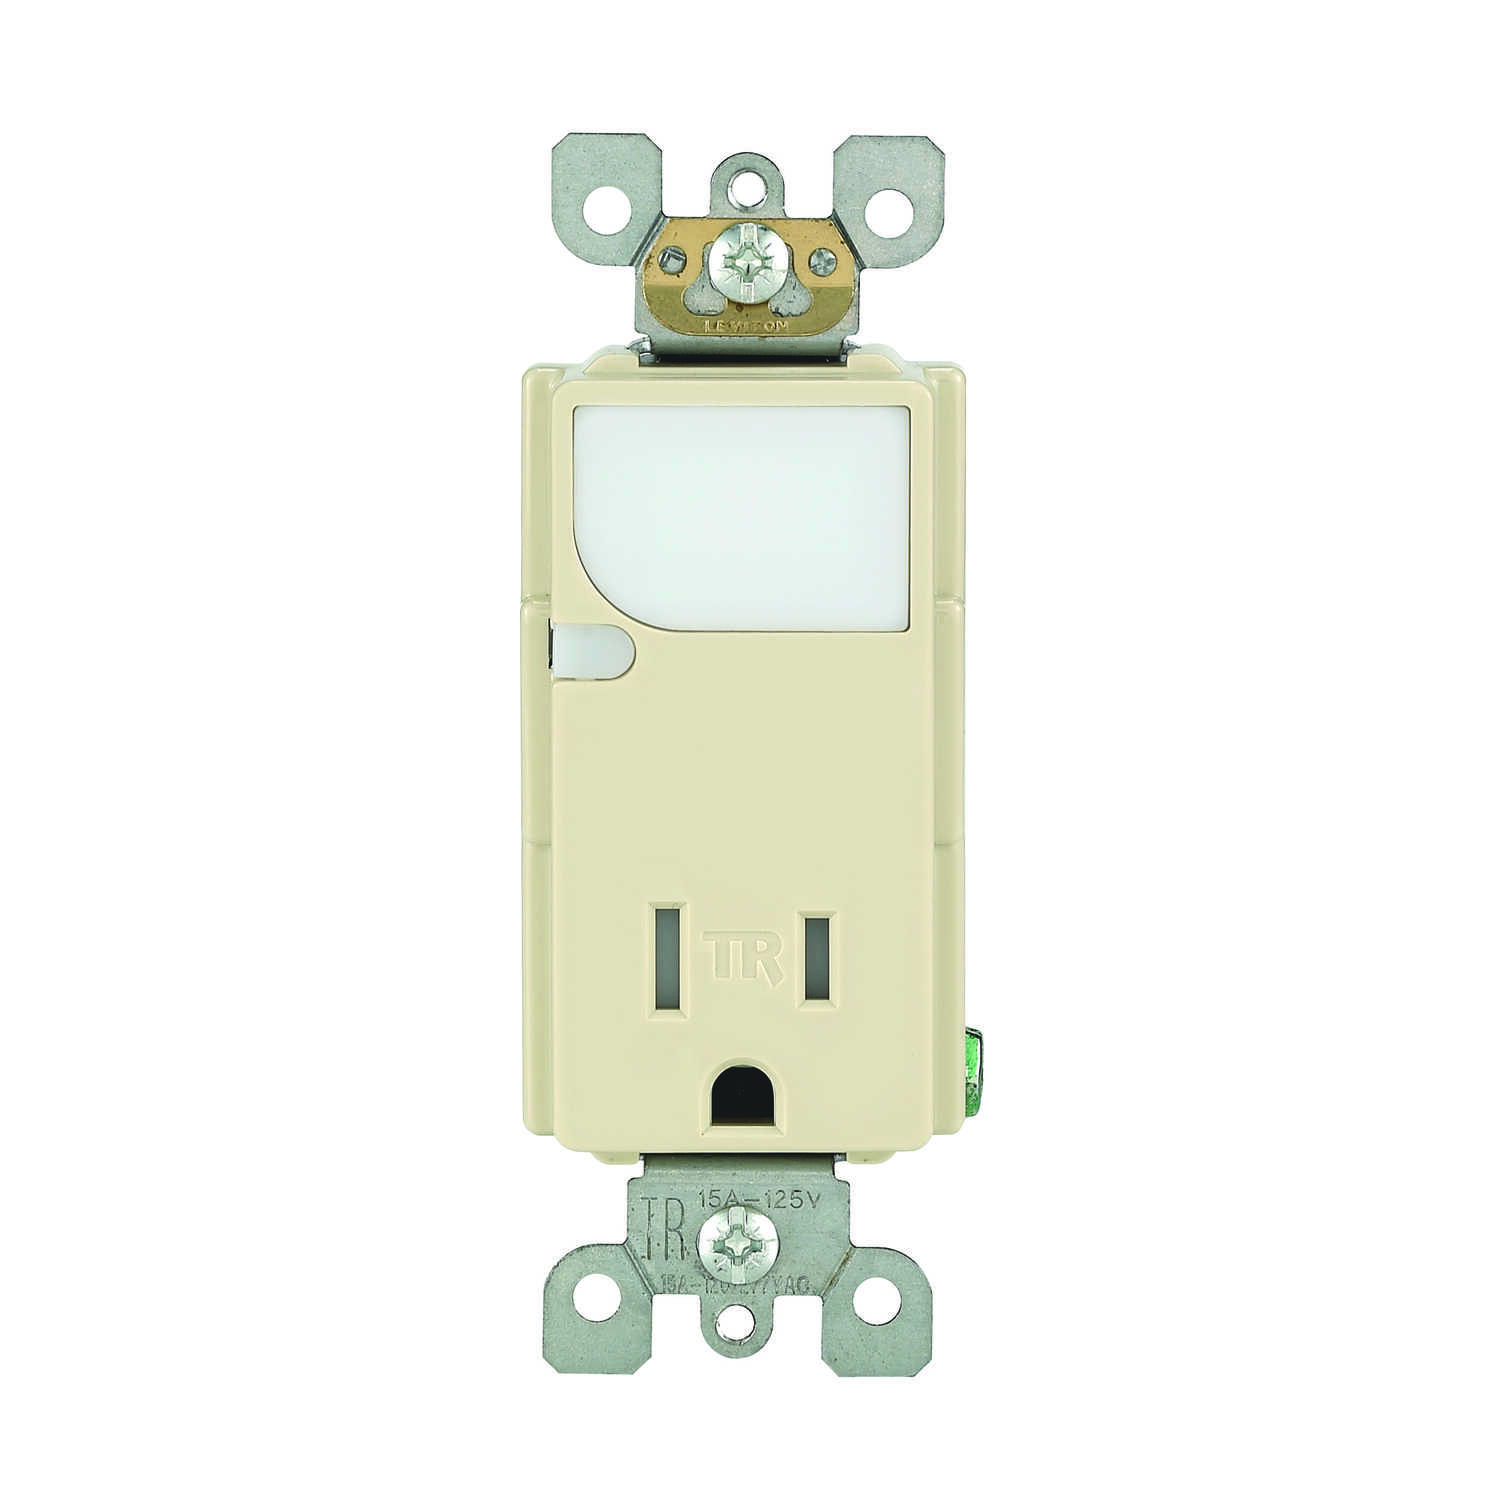 Leviton  Decora  15 amps 125 volt Ivory  Outlet/Guide Light  5-15R